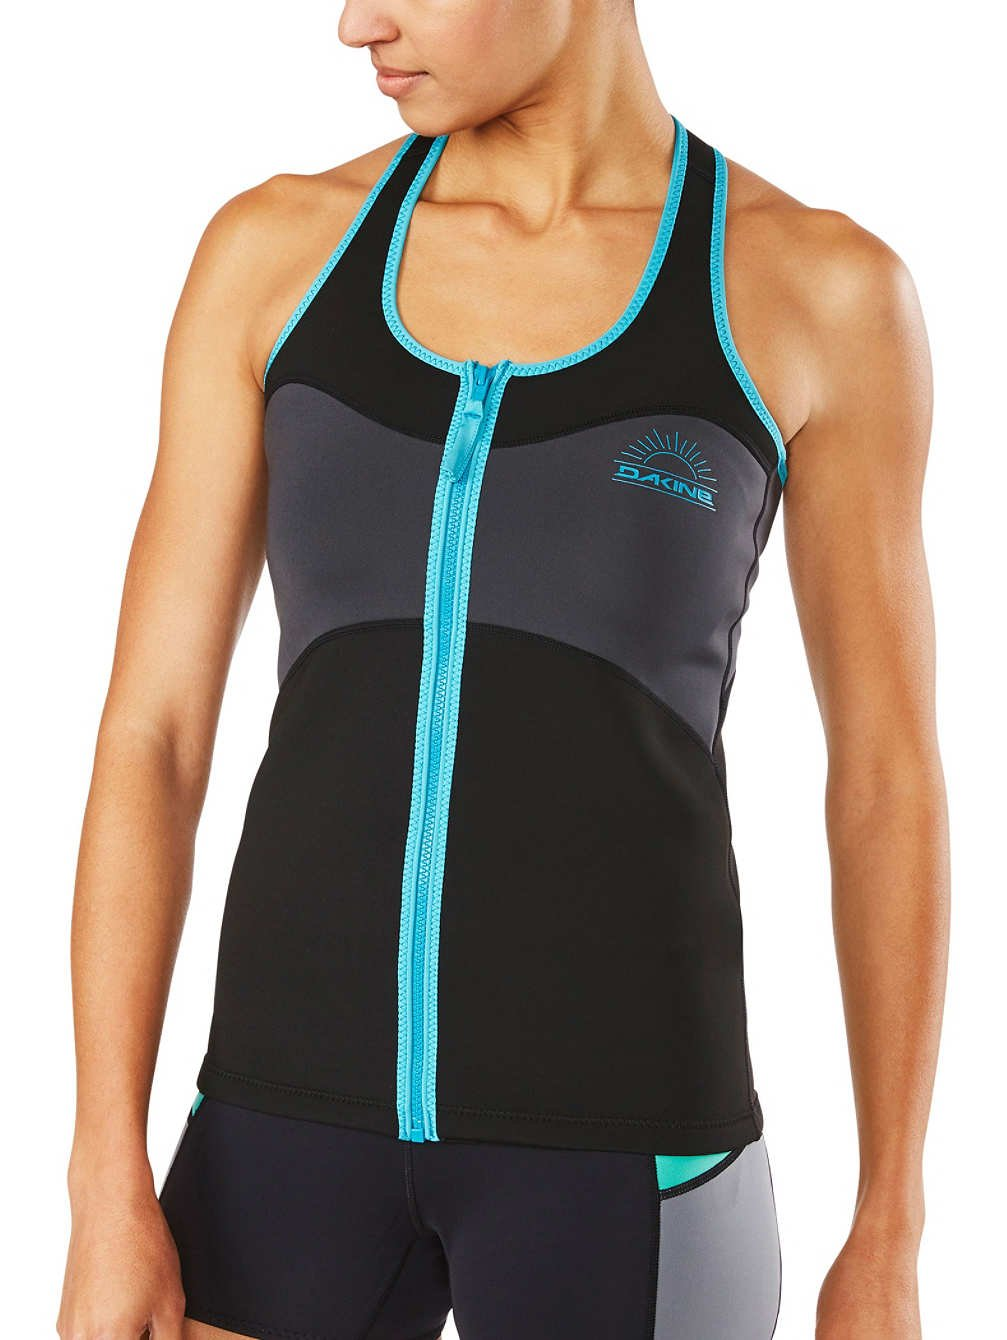 Dakine Women's 1mm Neo Vest, Black, XS by Dakine